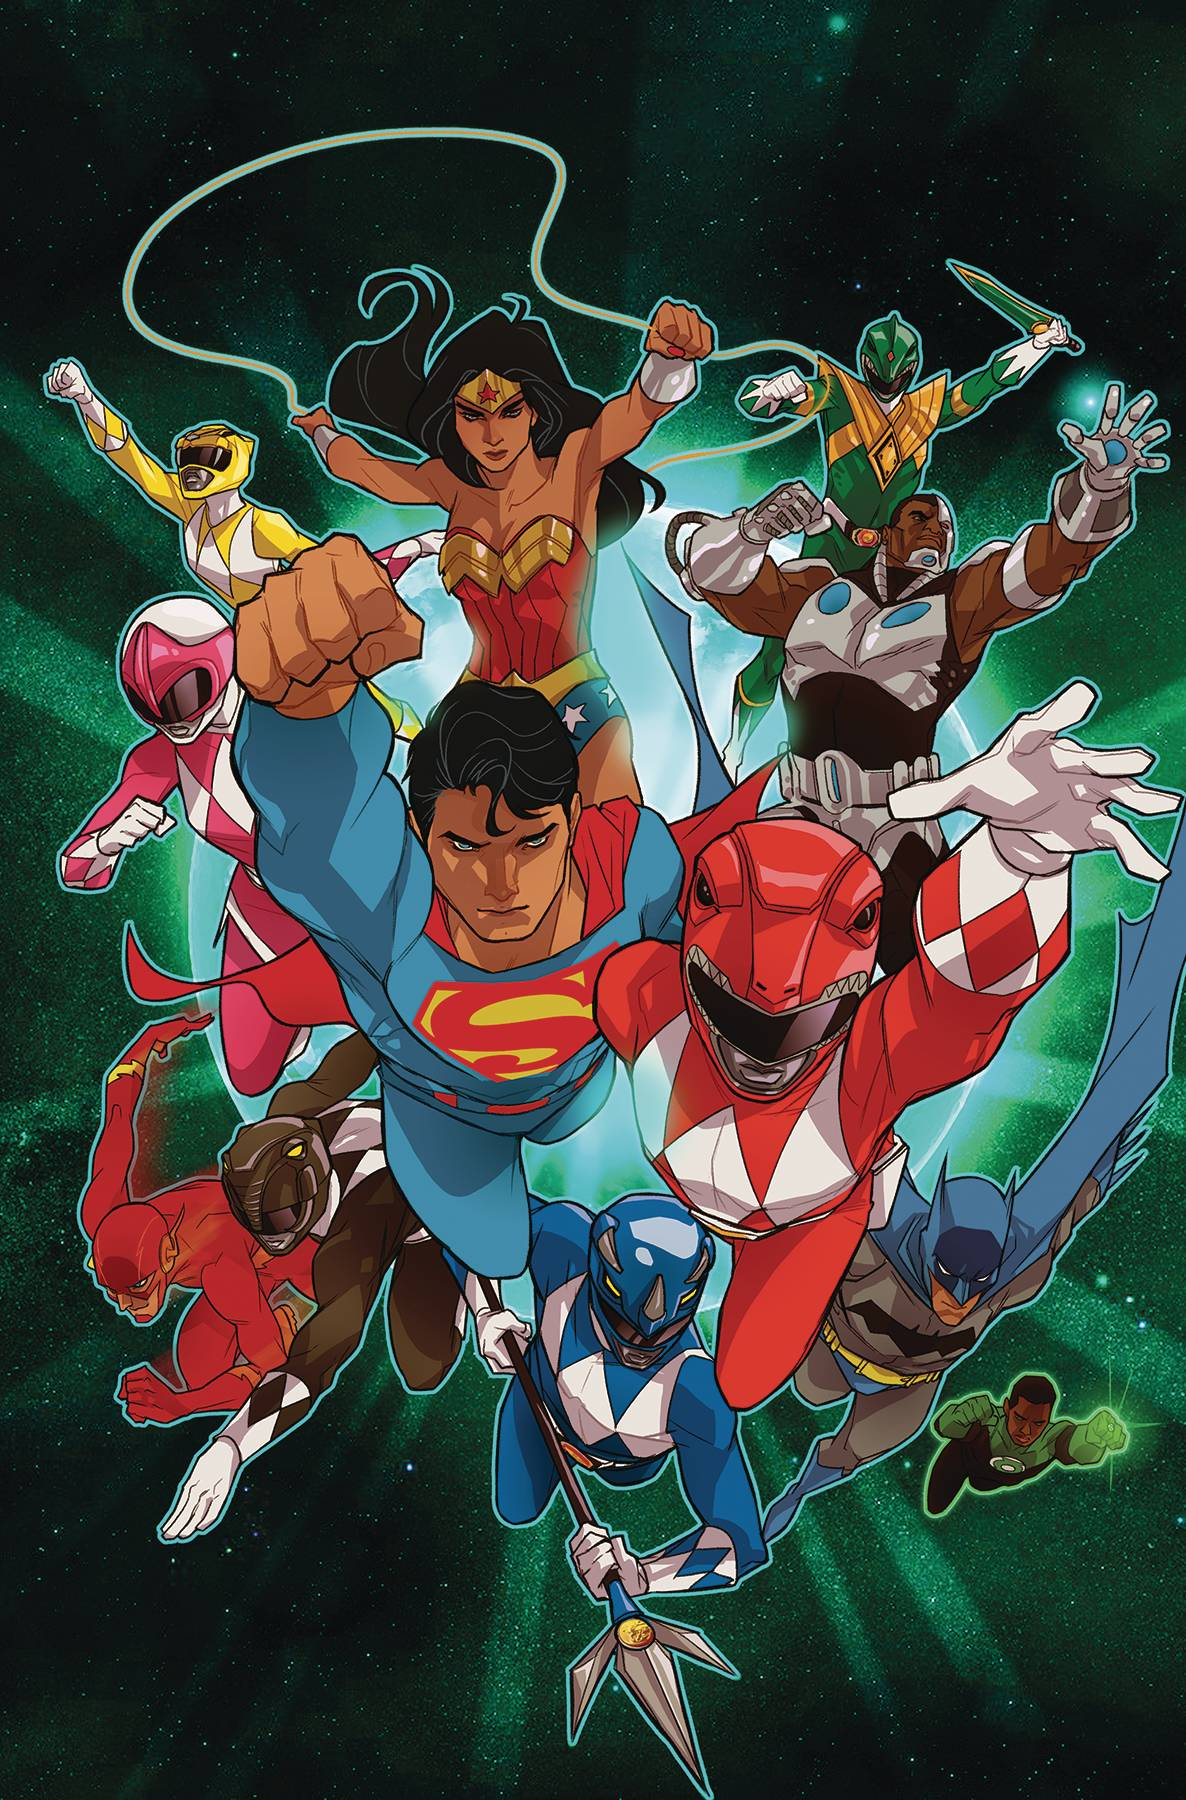 JUSTICE LEAGUE POWER RANGERS #2